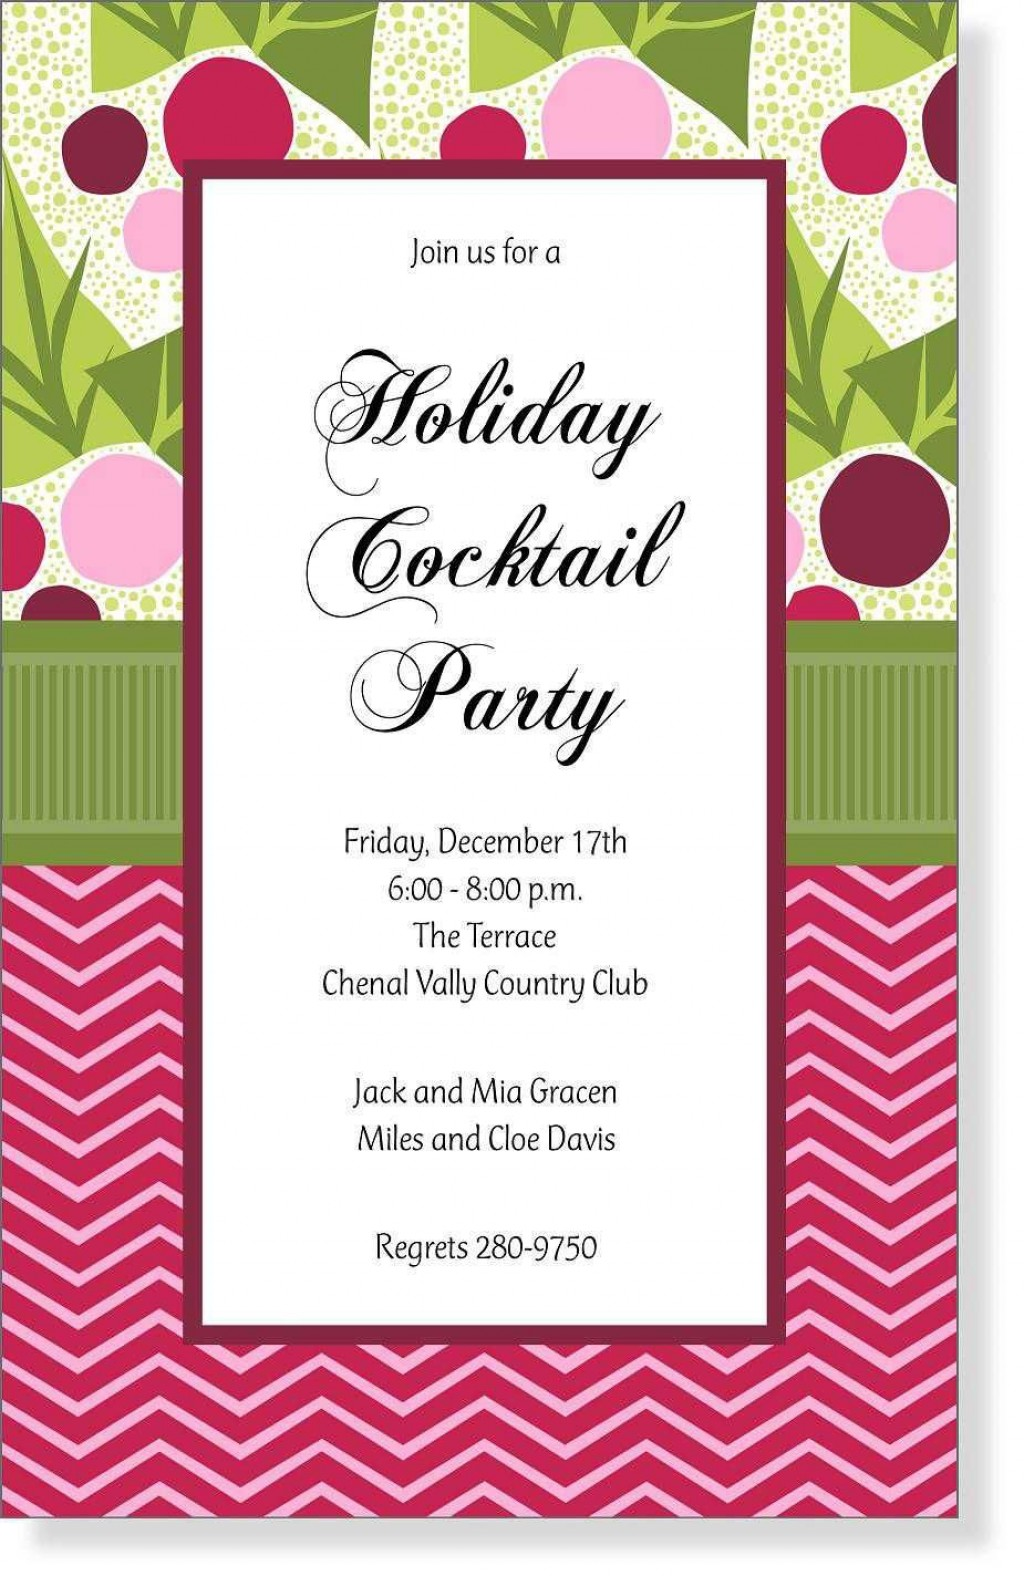 003 Rare Holiday Open House Invitation Template High Definition  Christma Free Printable Wording IdeaLarge